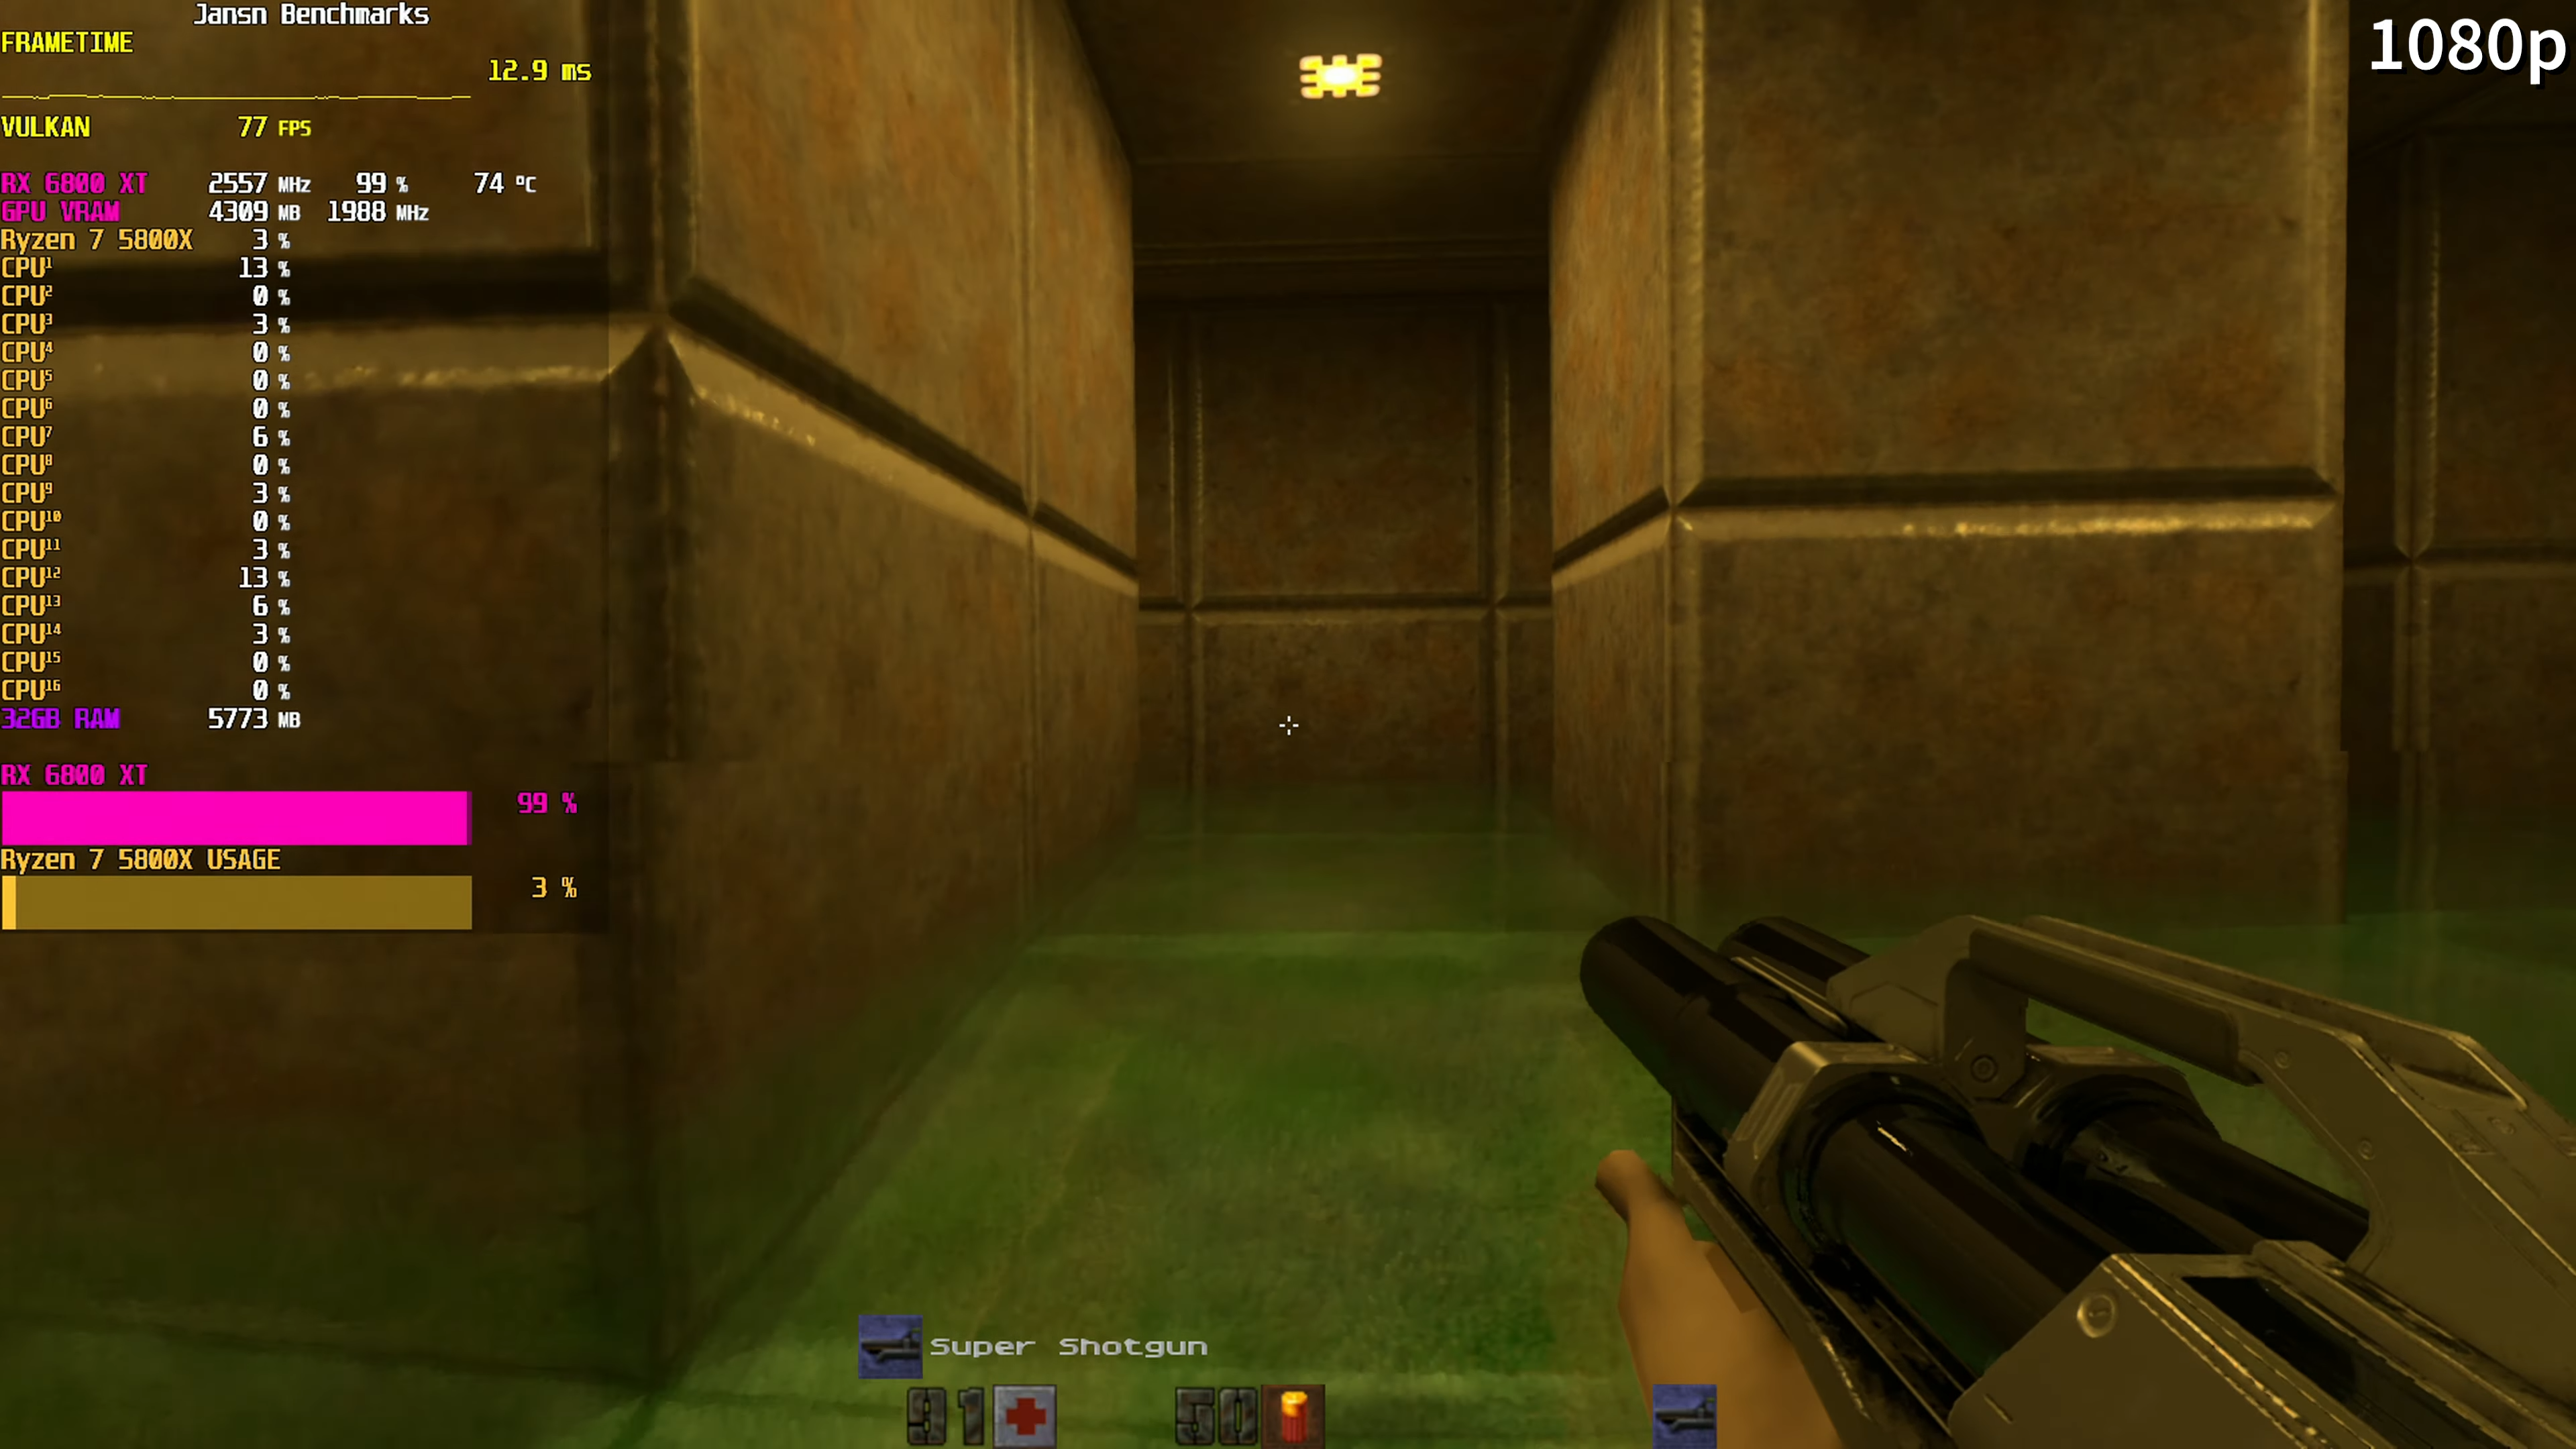 Media asset in full size related to 3dfxzone.it news item entitled as follows: Quake II RTX 1.4.0 supporta il ray tracing con le GPU AMD Radeon RX 6000 | Image Name: news31458_Quake-II-RTX-Radeon-RX-6800-XT_3.png